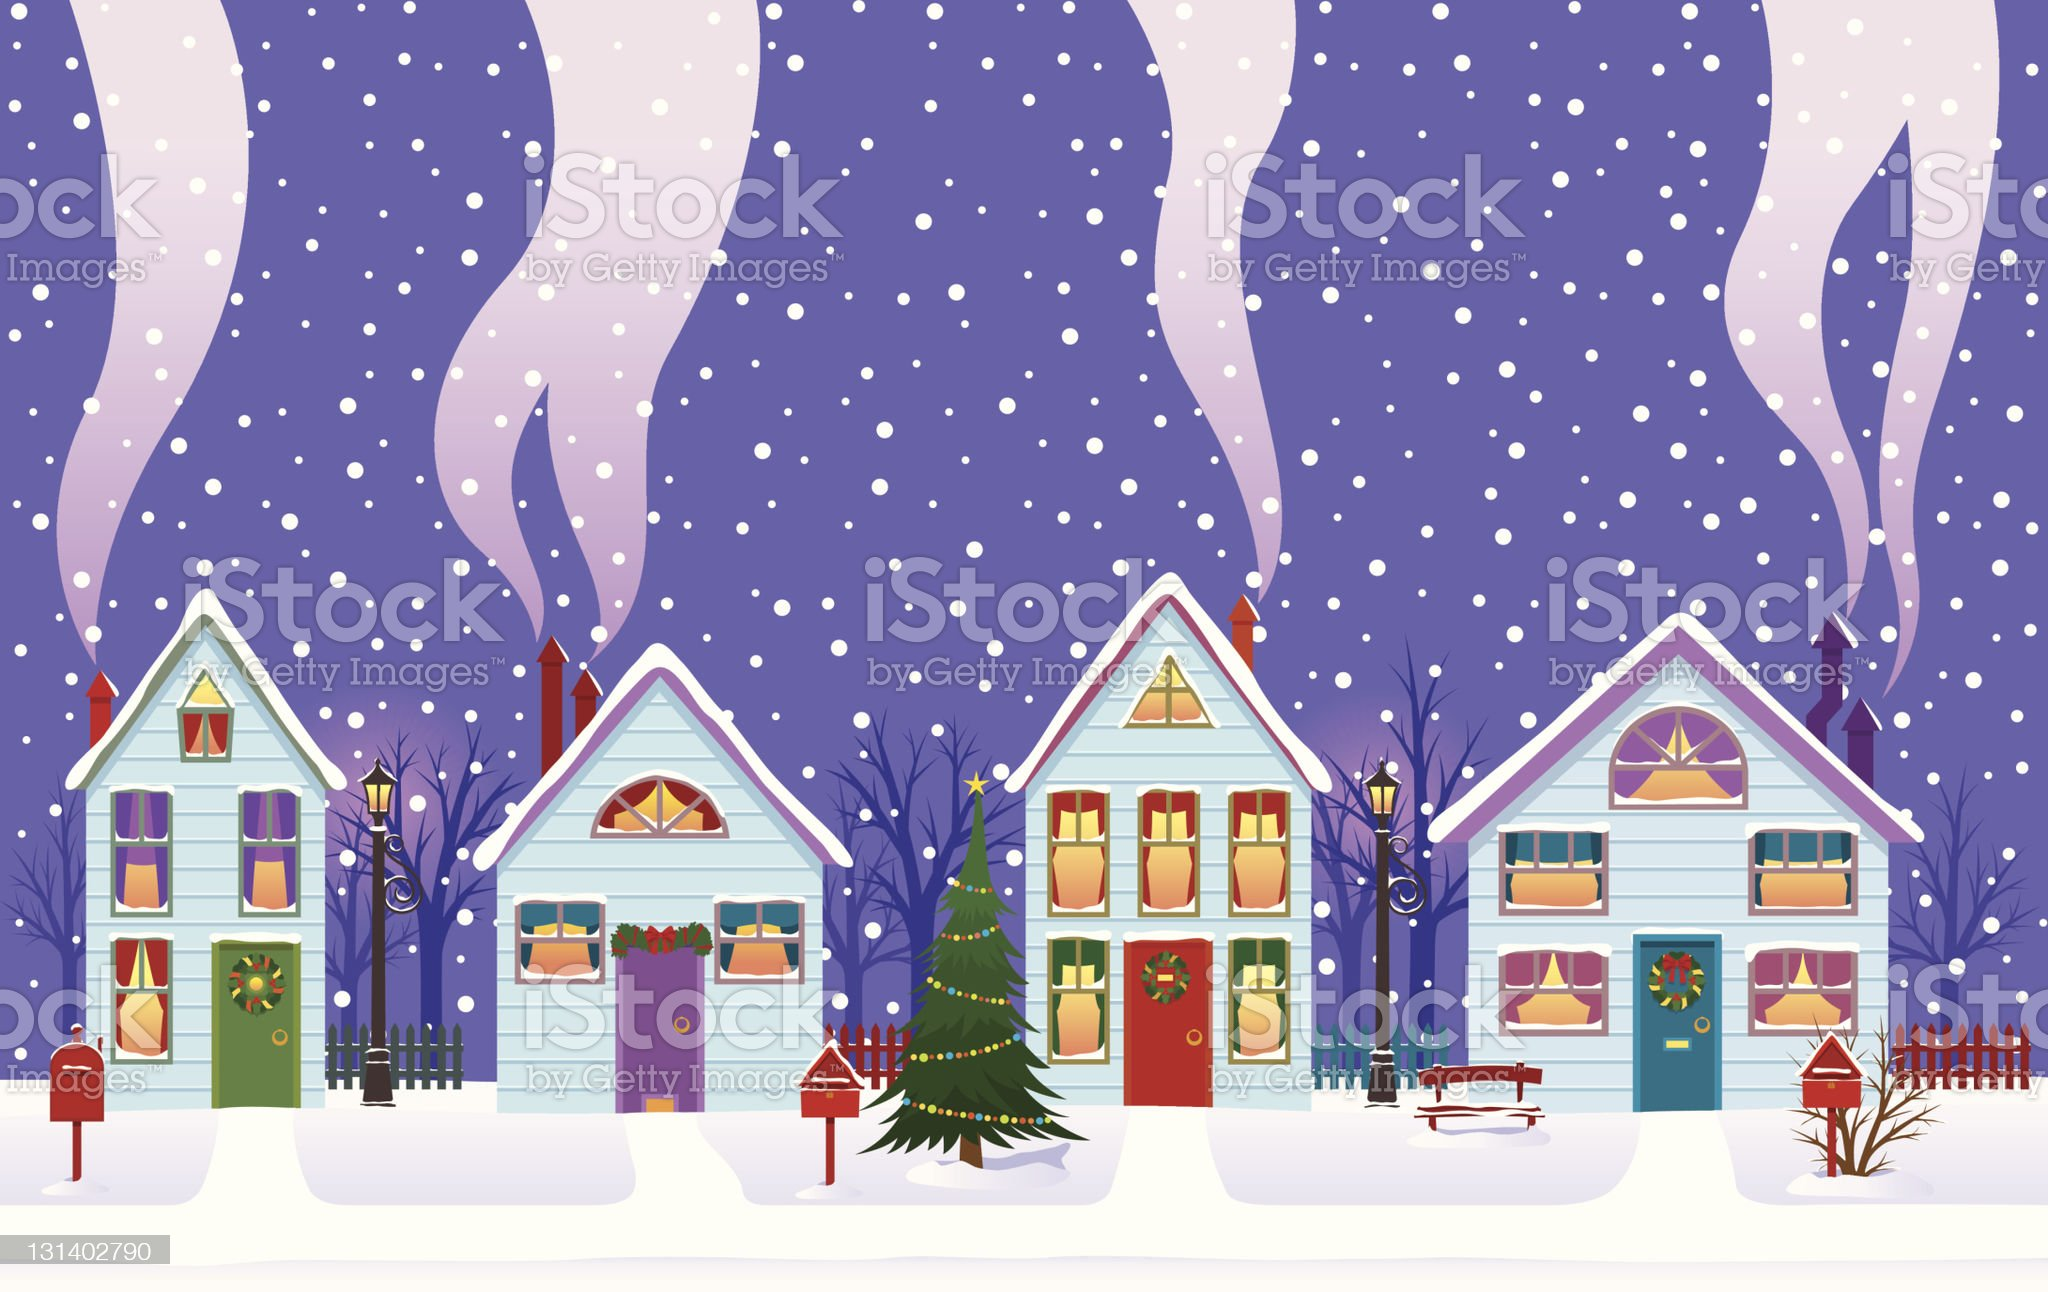 Christmas Eve in the city royalty-free stock vector art